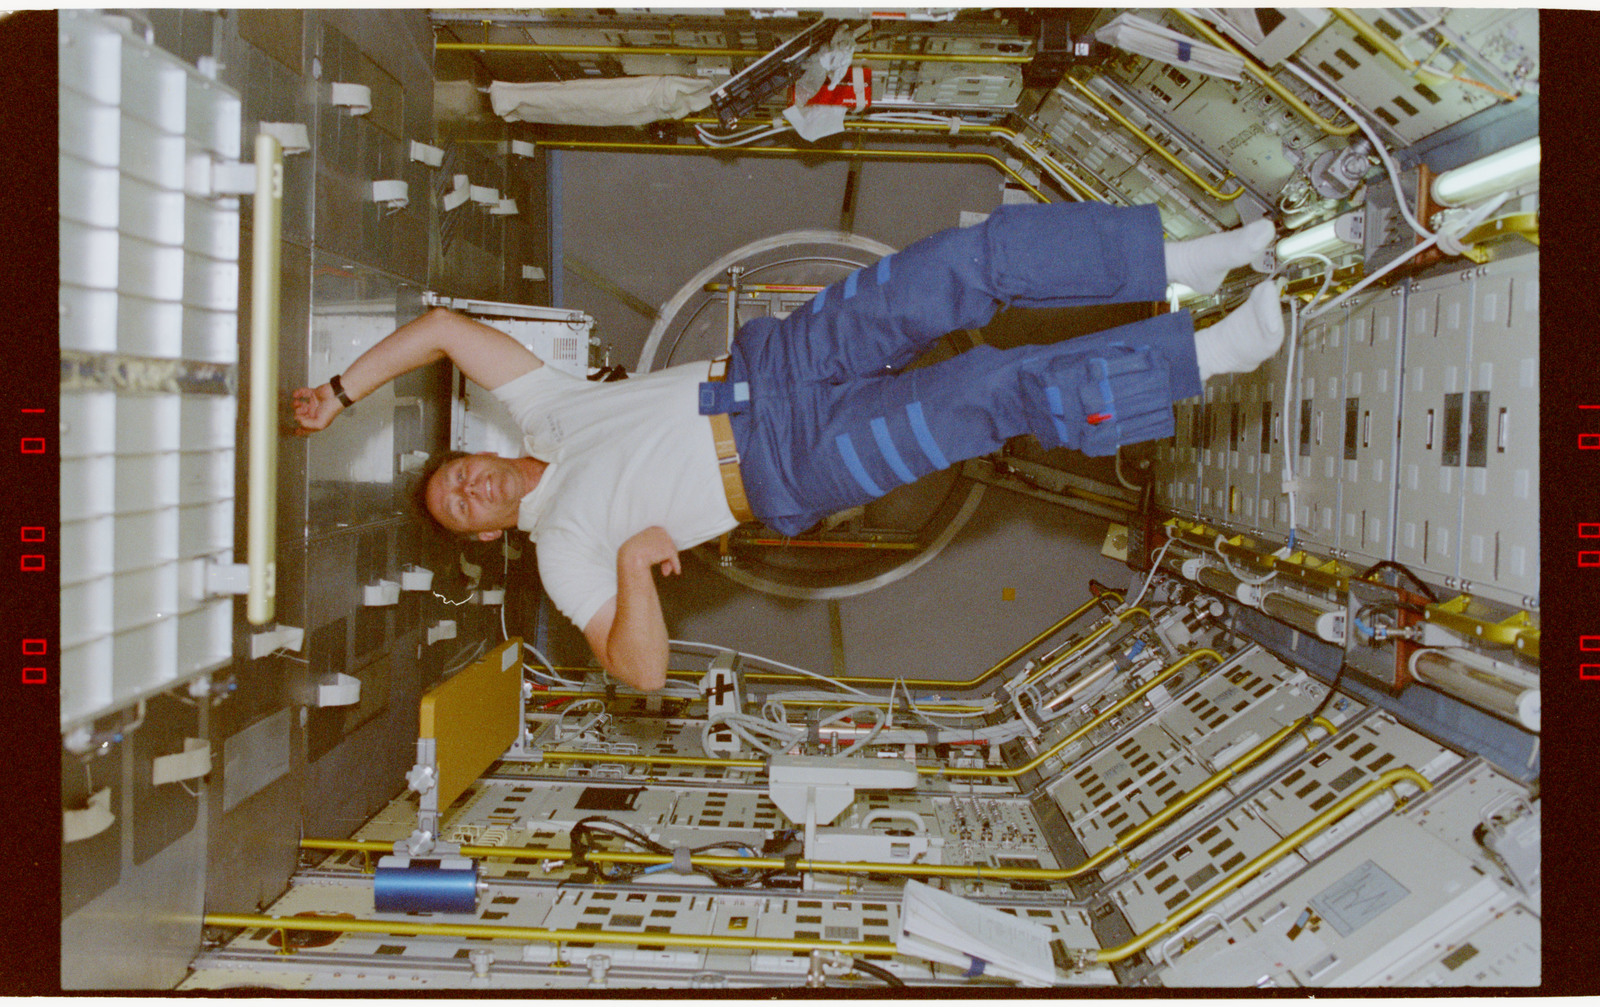 STS055-218-008 - STS-055 - Crewmember in the D-2 Spacelab.